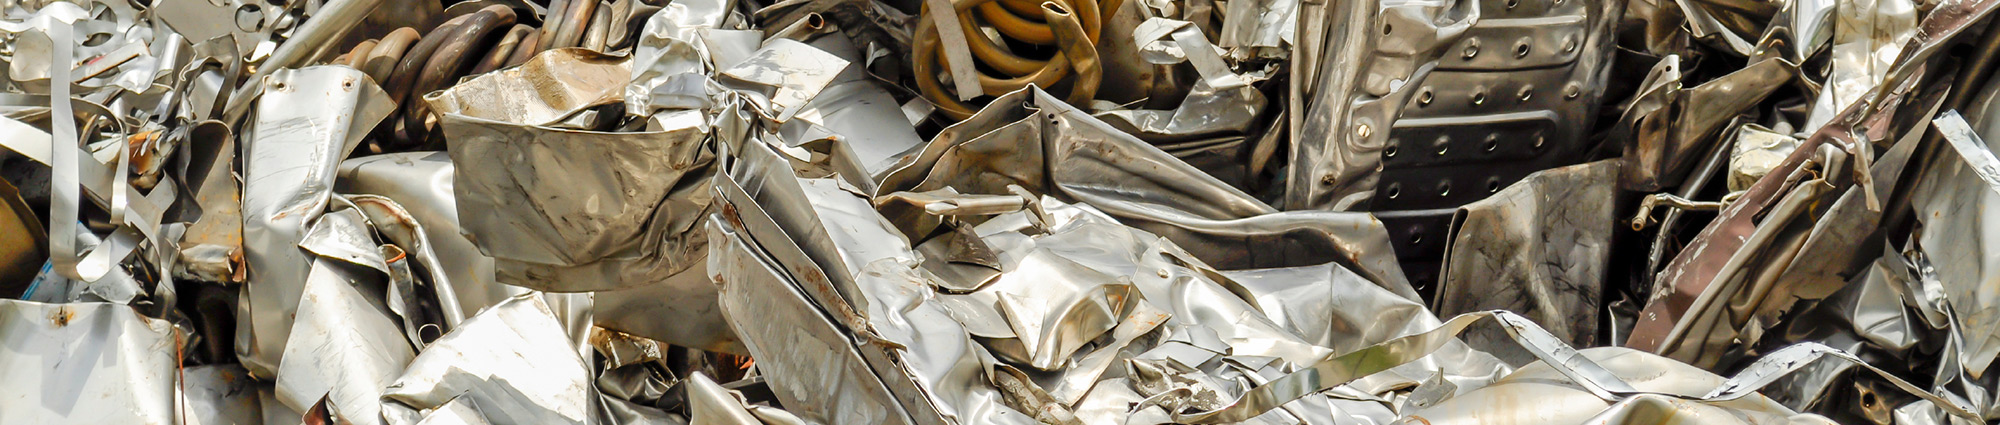 C&K Metal Recycling Services in Moorfield, WV